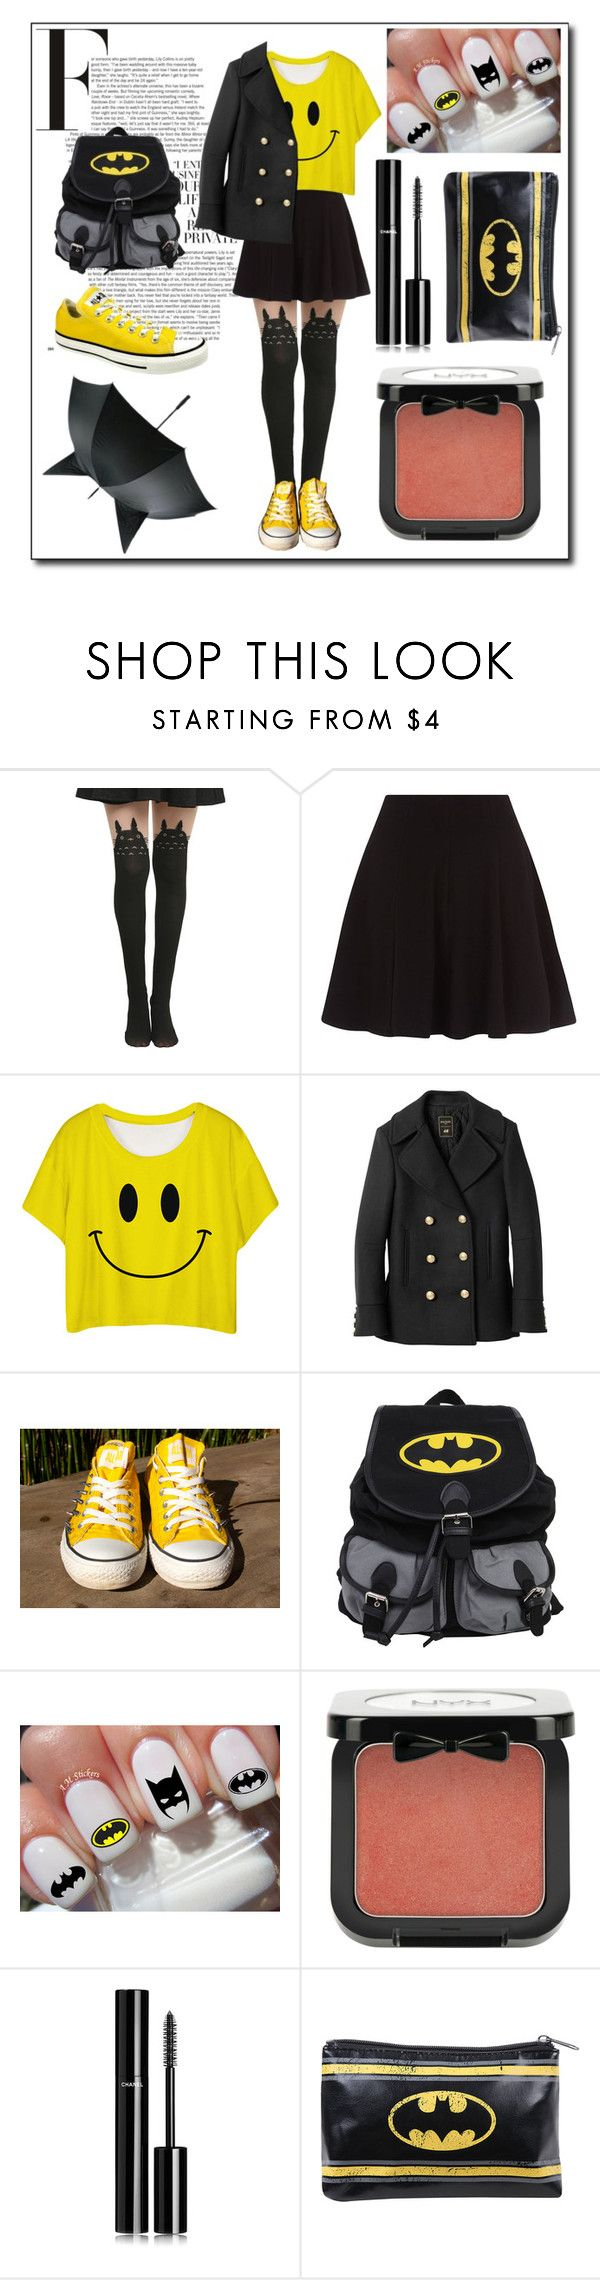 """""""Quick Yellow&Black Style Set (batman/smiley face)"""" by wittysummer24 ❤ liked on Polyvore featuring Ghibli, Balmain, Converse, NYX and Chanel"""